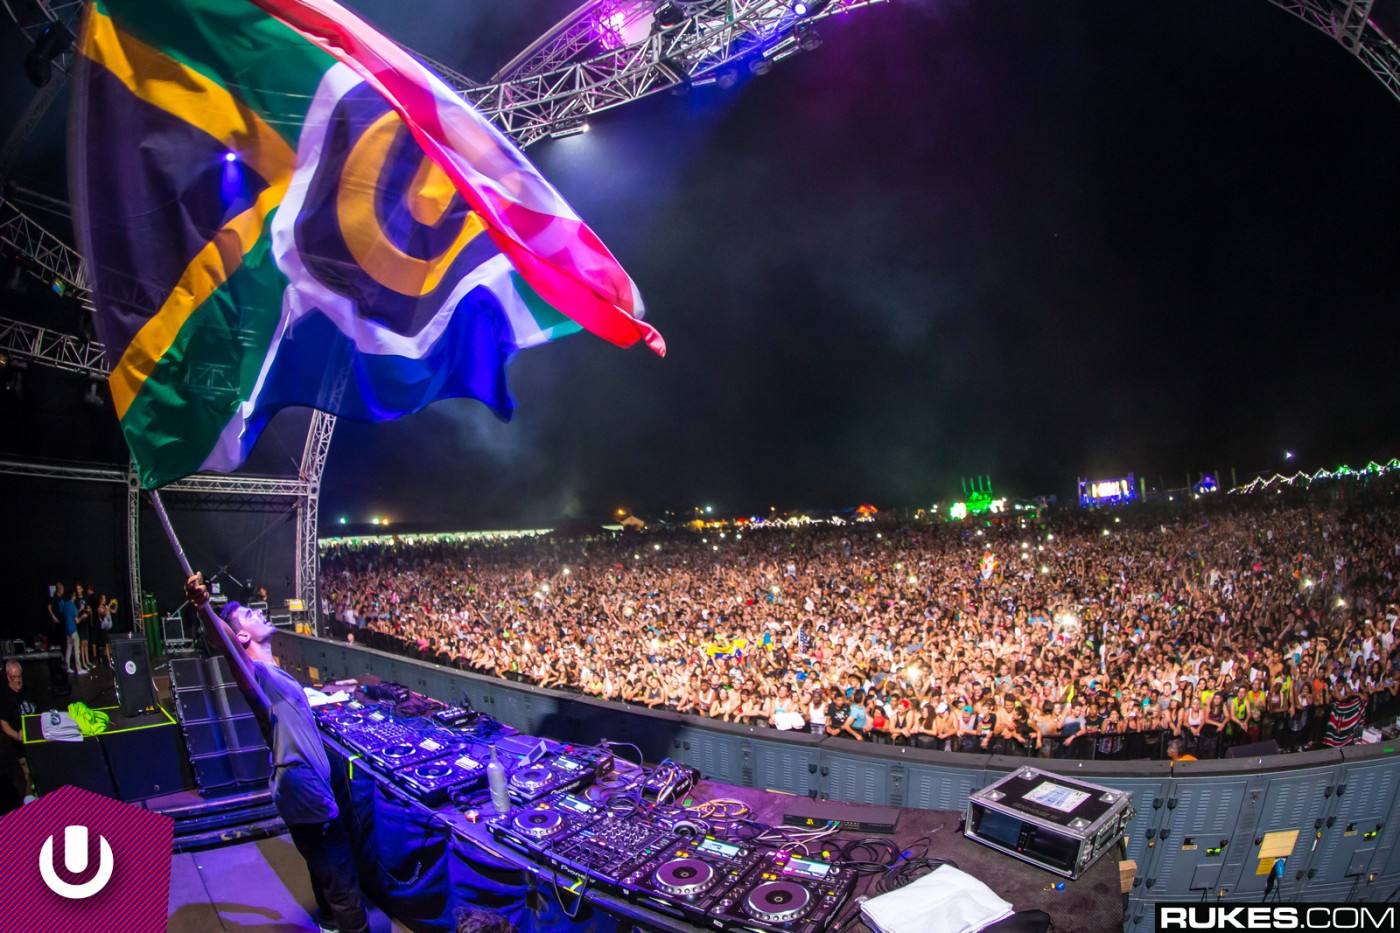 ultra south africa (Rukes)